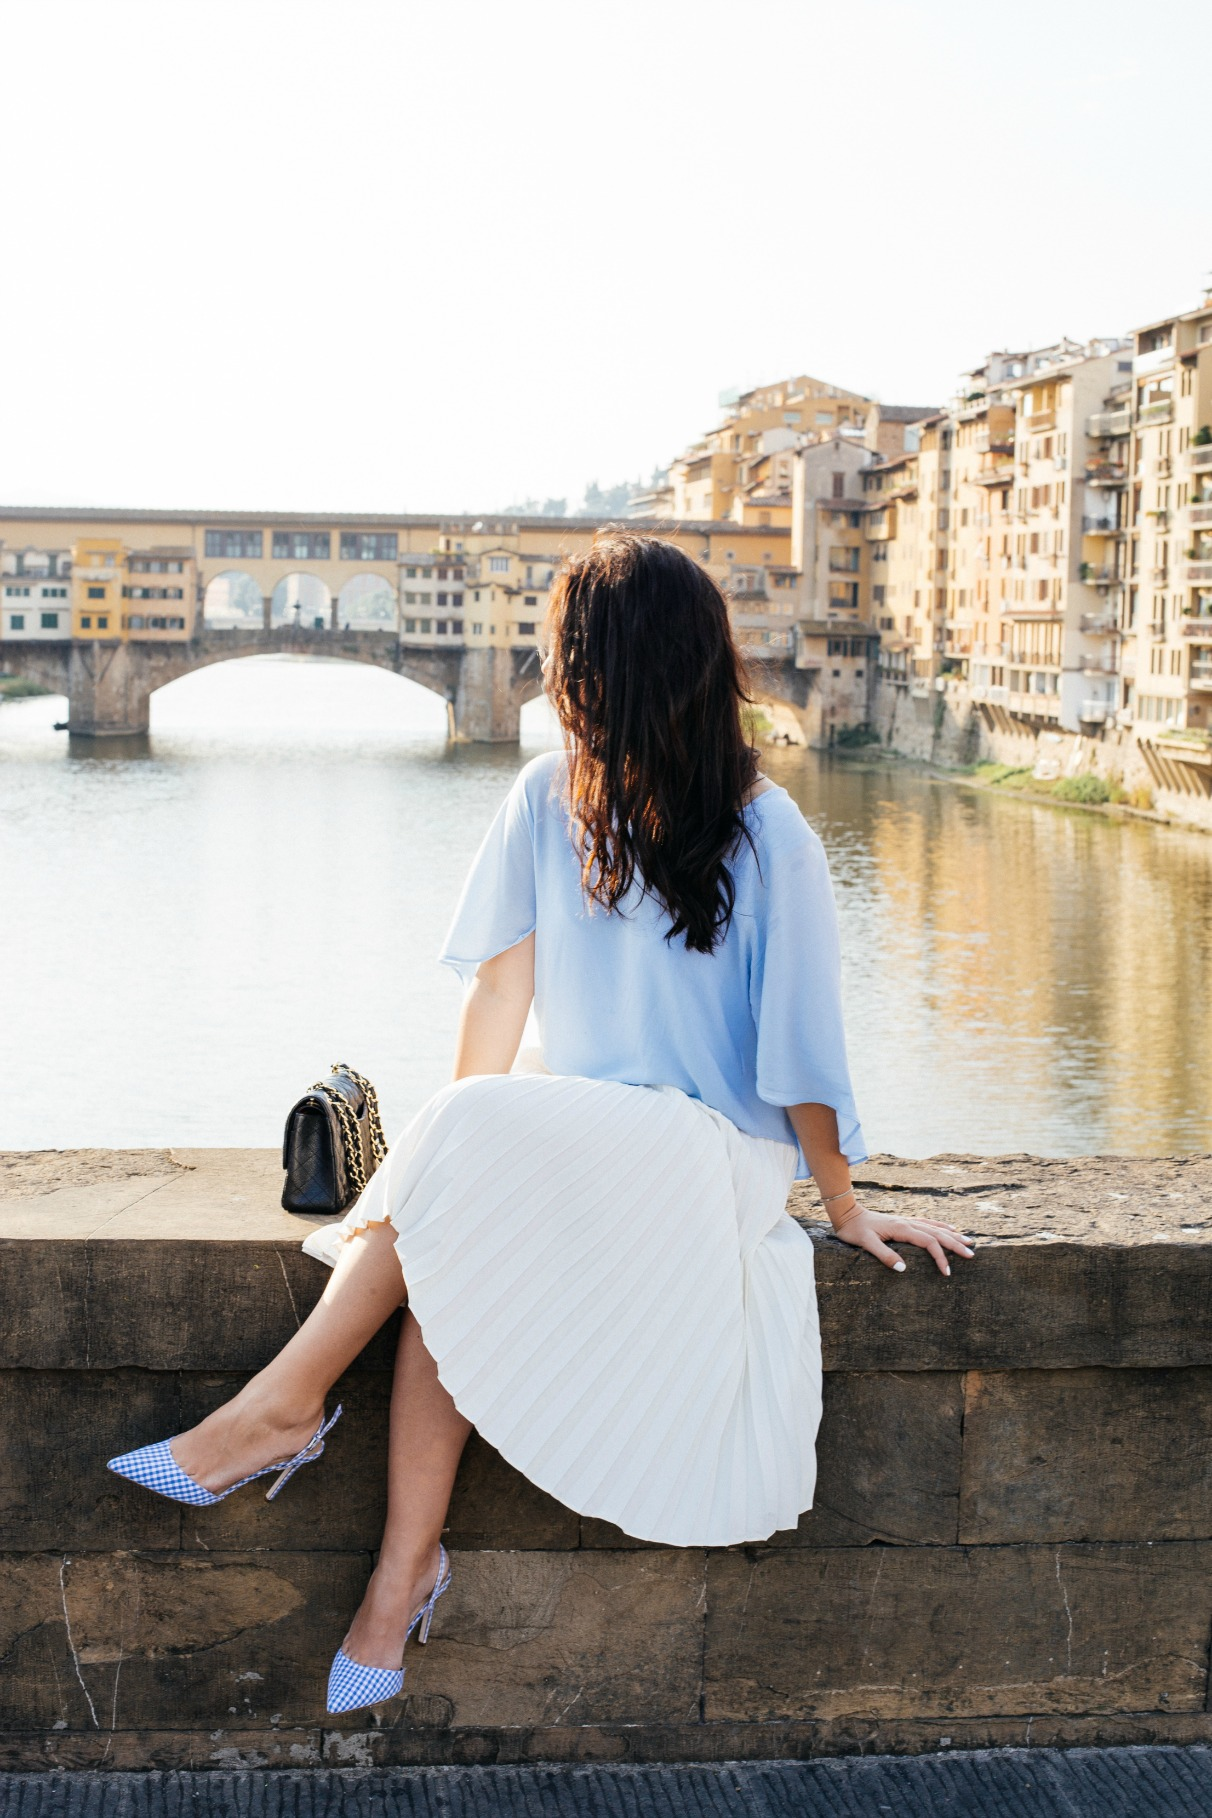 sunrise-sunset-firenze-glorence-italy-ponte-vecchio-bridge-summer-2016-disi-couture-27